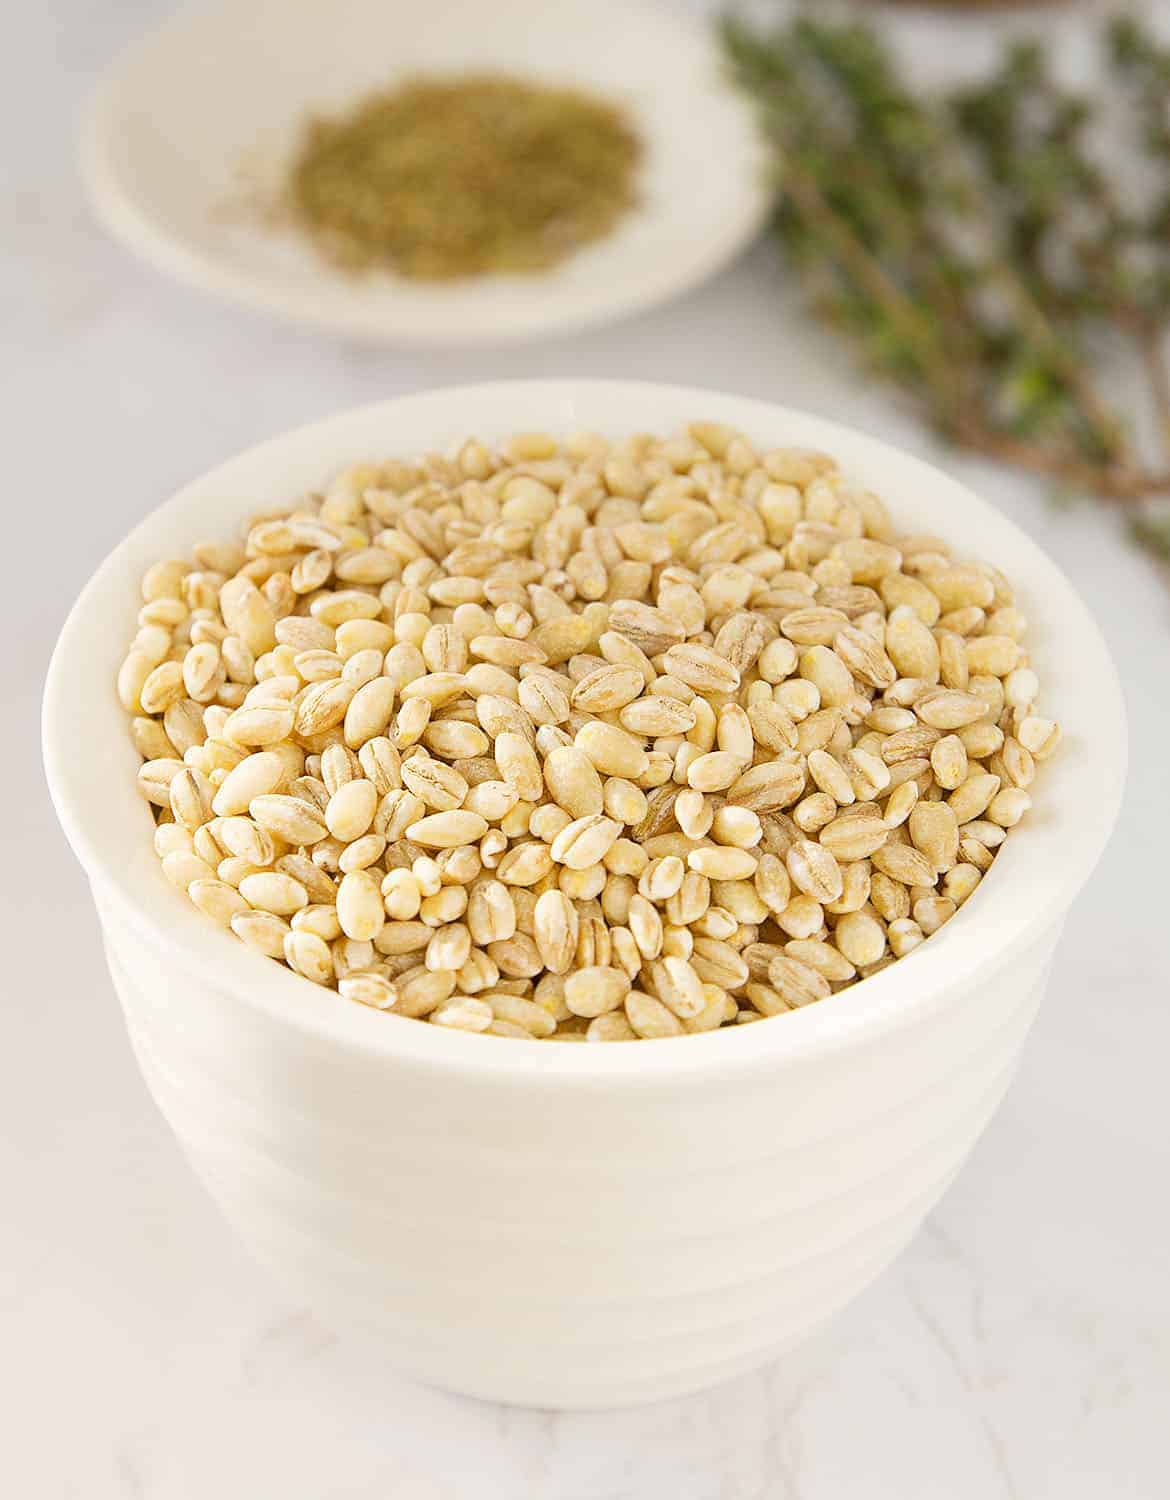 Uncooked barley in a small white bowl.